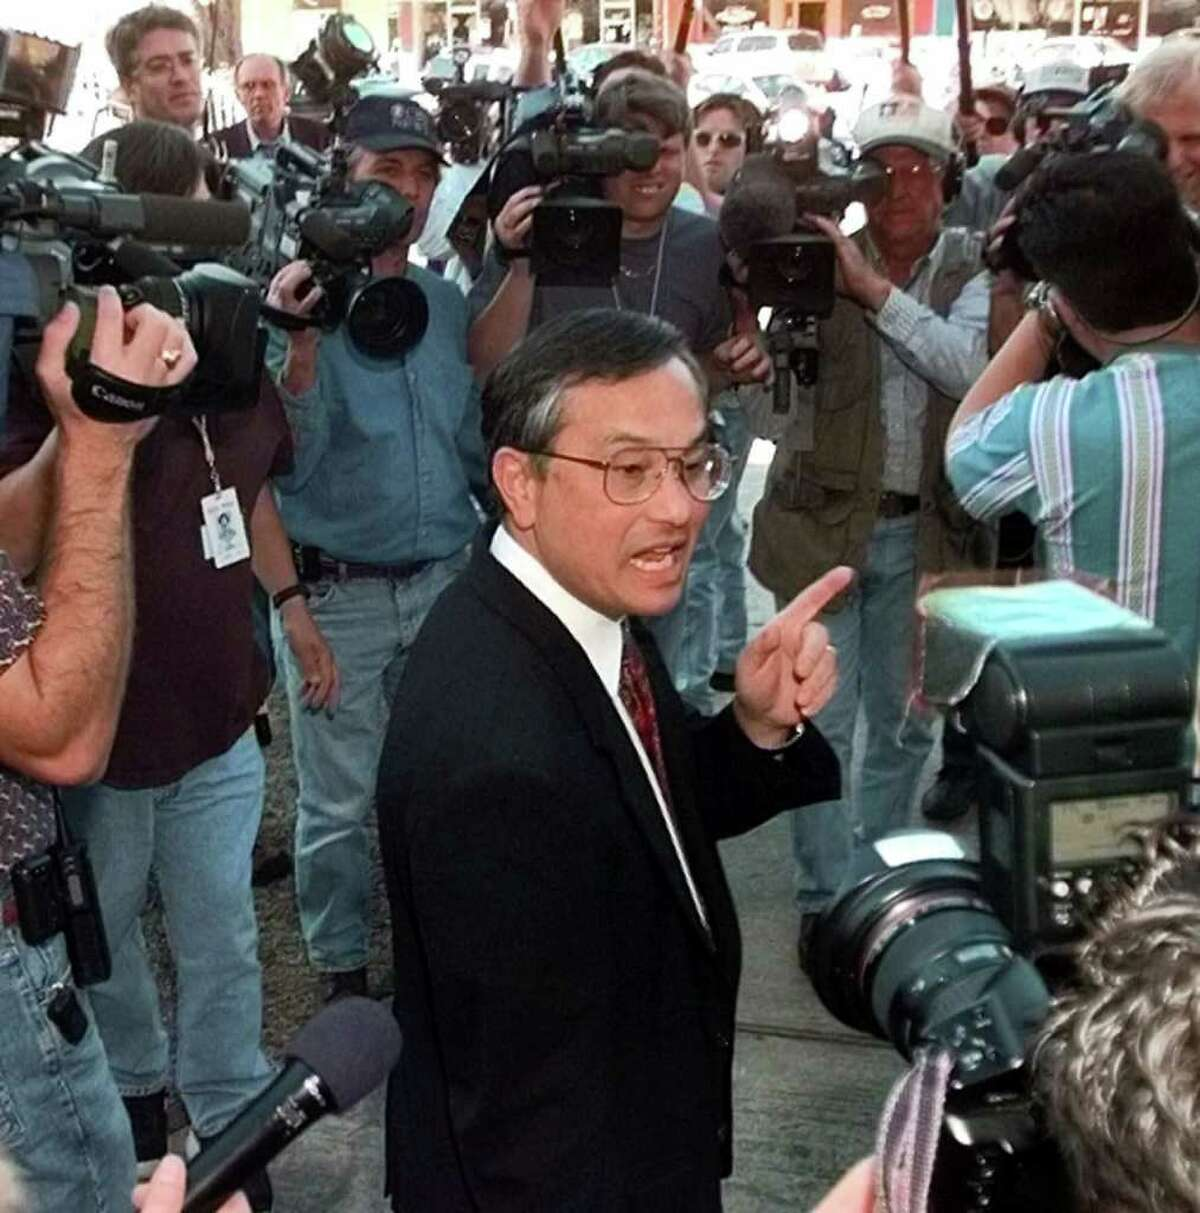 Dr. Walter Quijano, a former chief psychologist for the Texas prison system and now in private practice, talks to reporters after testifying in the punishment phase of John William King's trial Wednesday, Feb. 24, 1999, in Jasper, Texas. Quijano said King's lack of drug history and the fact that he used no weapons during previous crimes contributed to his sentiment for a life sentence. King, who was convicted of capital murder in the dragging death of James Byrd Jr., could get the death penalty for hiscrime. (AP Photo/David J. Phillip) HOUCHRON CAPTION (06/07/2000): Quijano. HOUCHRON CAPTION (06/10/2000): Clinical psychologist Walter Quijano of Conroe has testified in more than 100 capital cases. HOUCHRON CAPTION (06/15/2000): Four other cases involving sex offenders are under review by state officials because Dr. Walter Quijano or an associate was to testify as an expert witness regarding race.